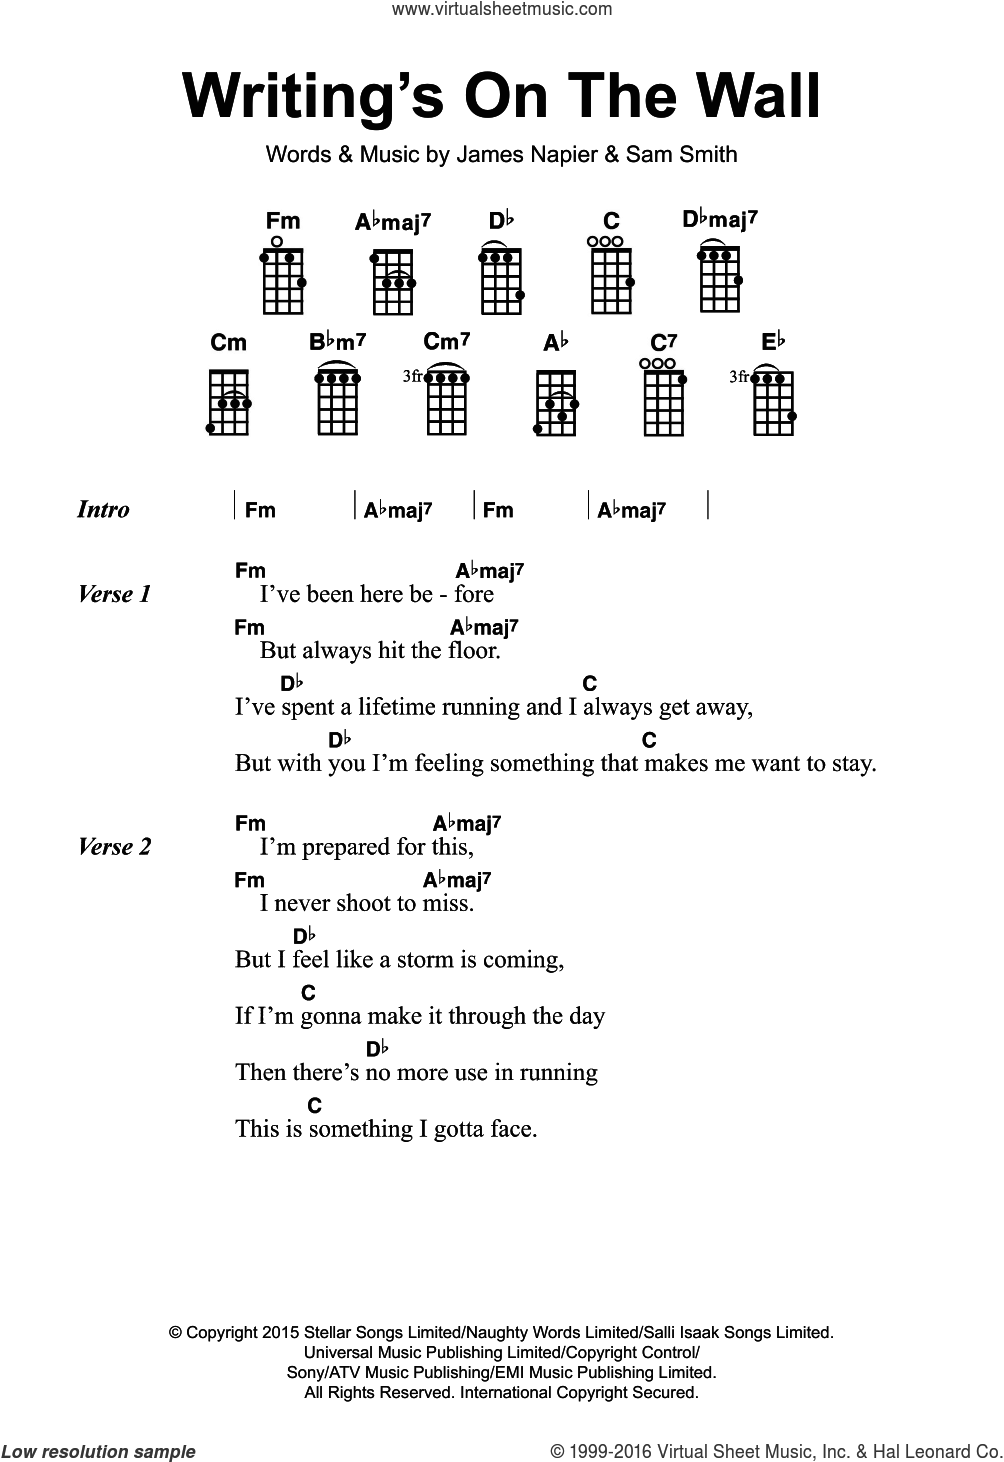 Writing's On The Wall (from James Bond: Spectre) sheet music for voice, piano or guitar by Sam Smith and James Napier, intermediate skill level